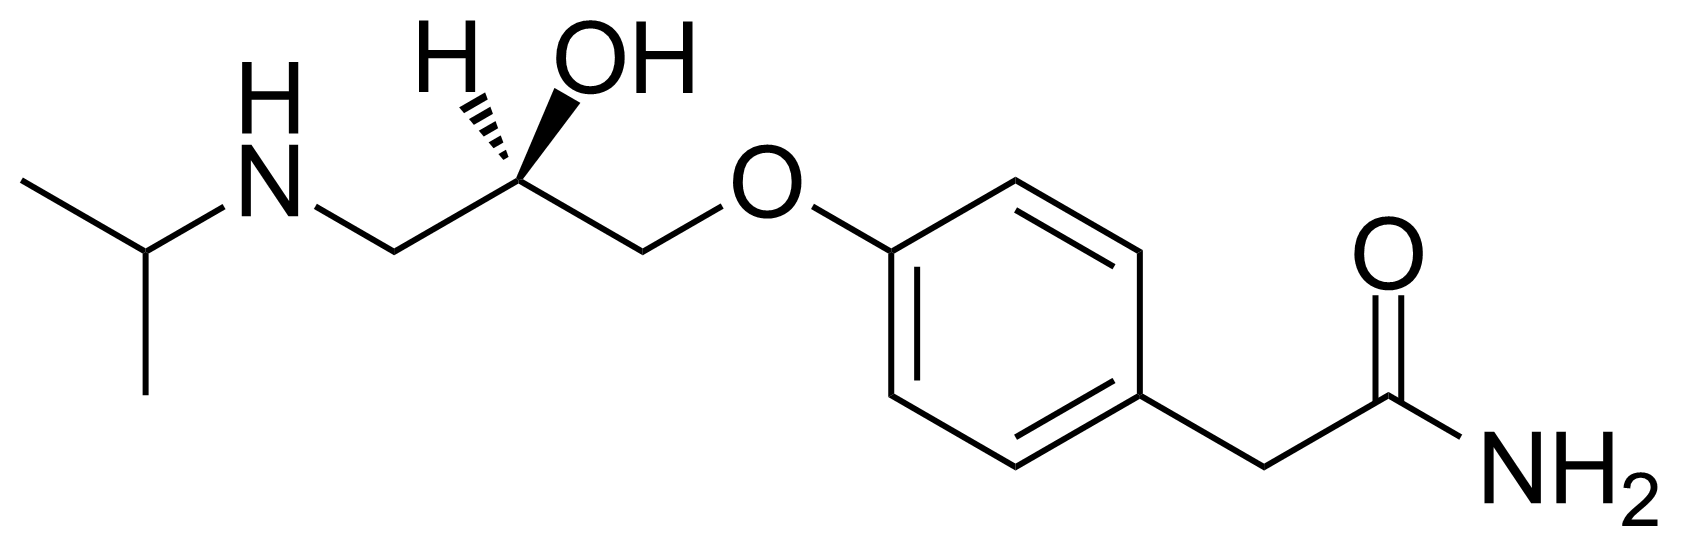 Structure of (R)-(+)-Atenolol